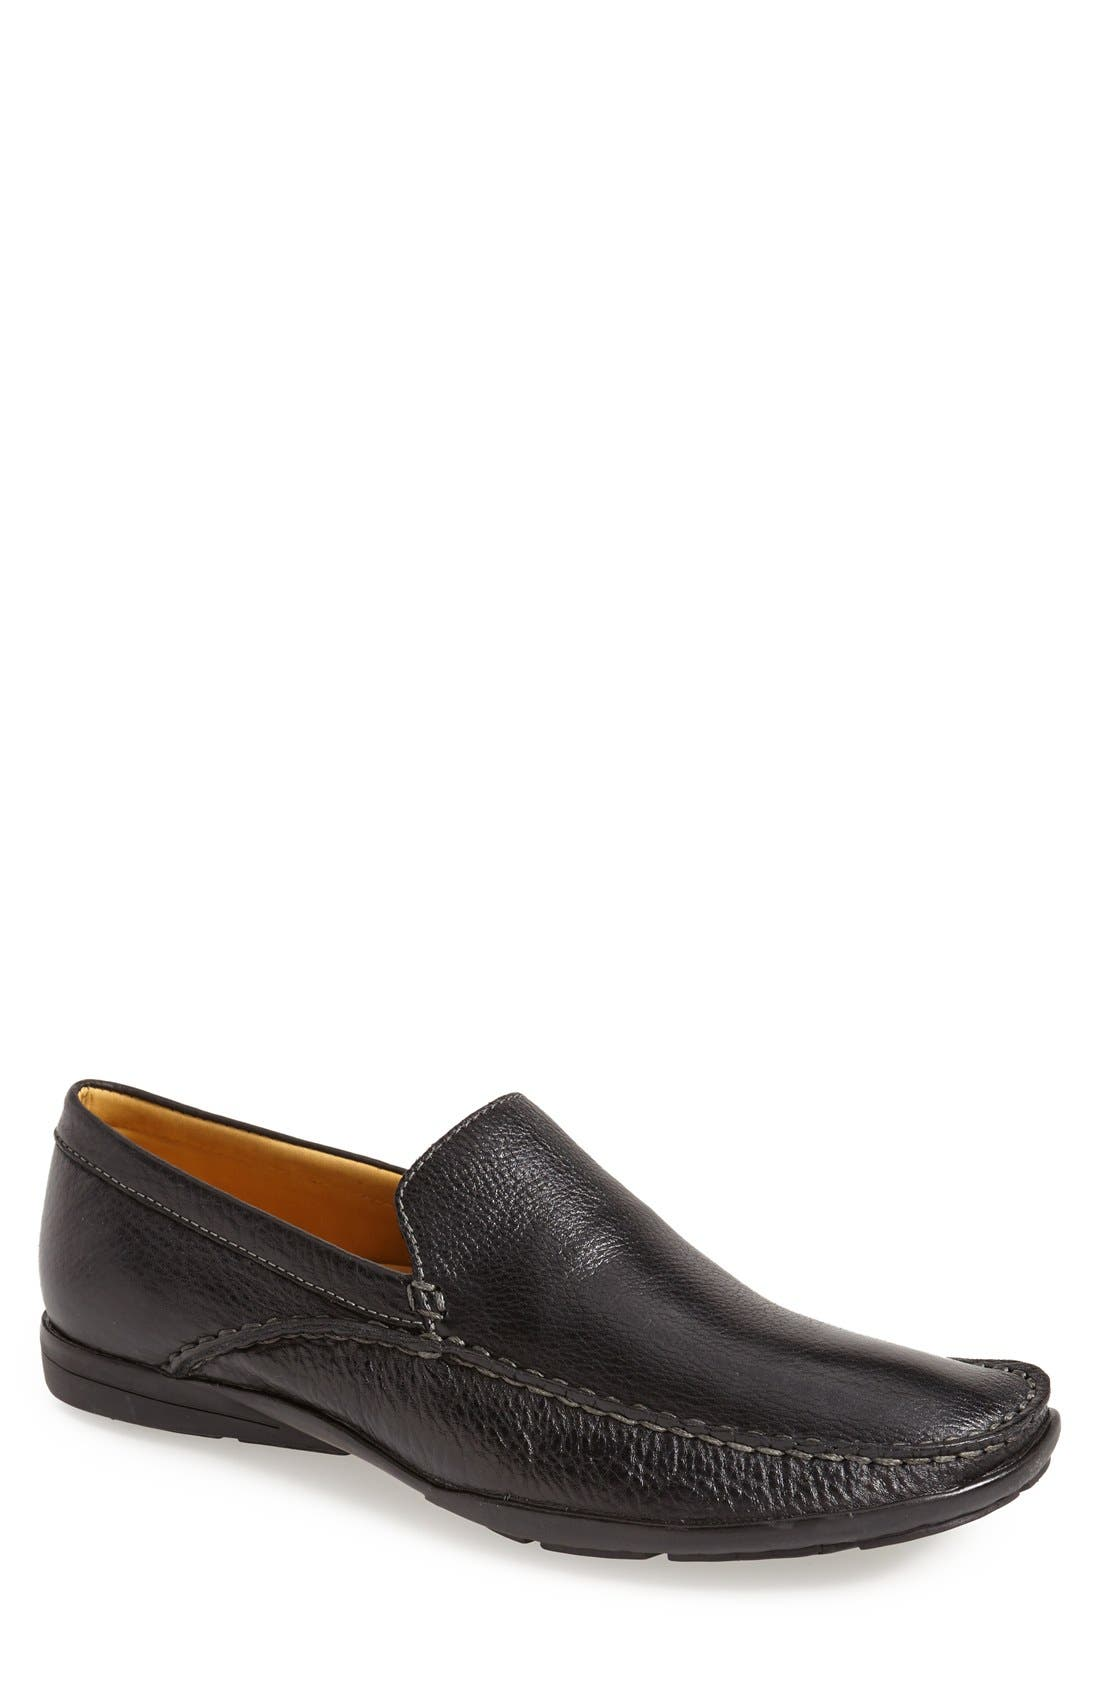 Main Image - Sandro Moscoloni 'Dillon' Loafer (Men)